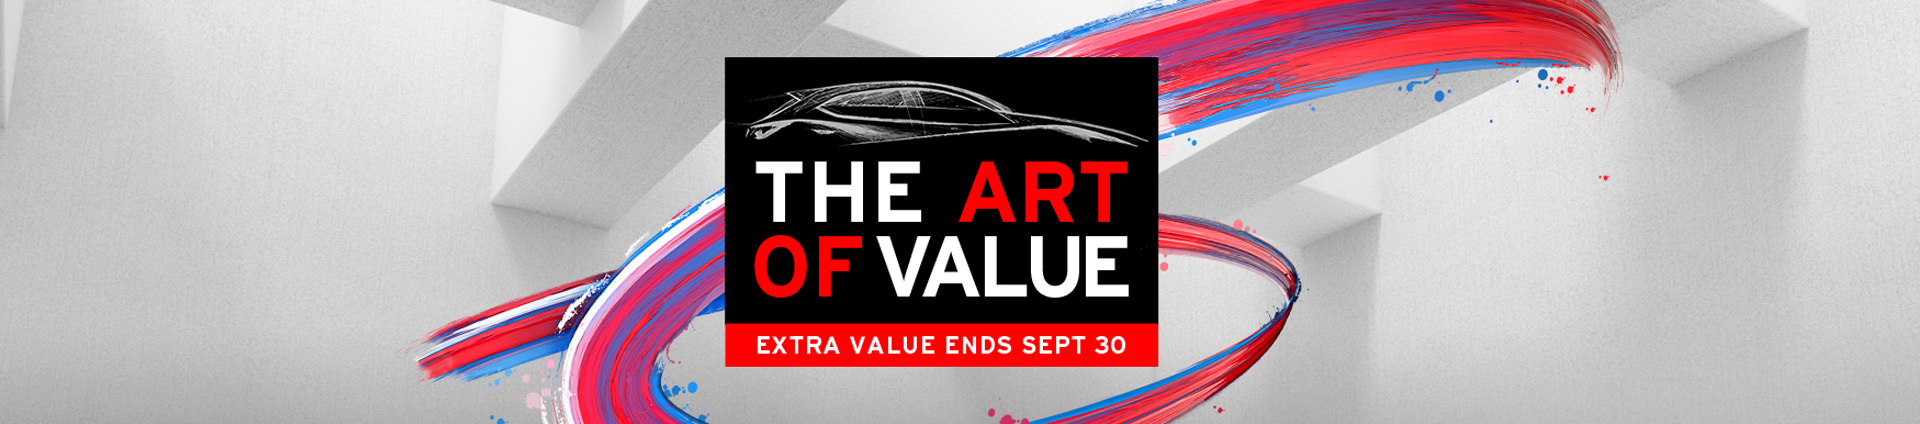 Mazda - National Offer - The Art of Value